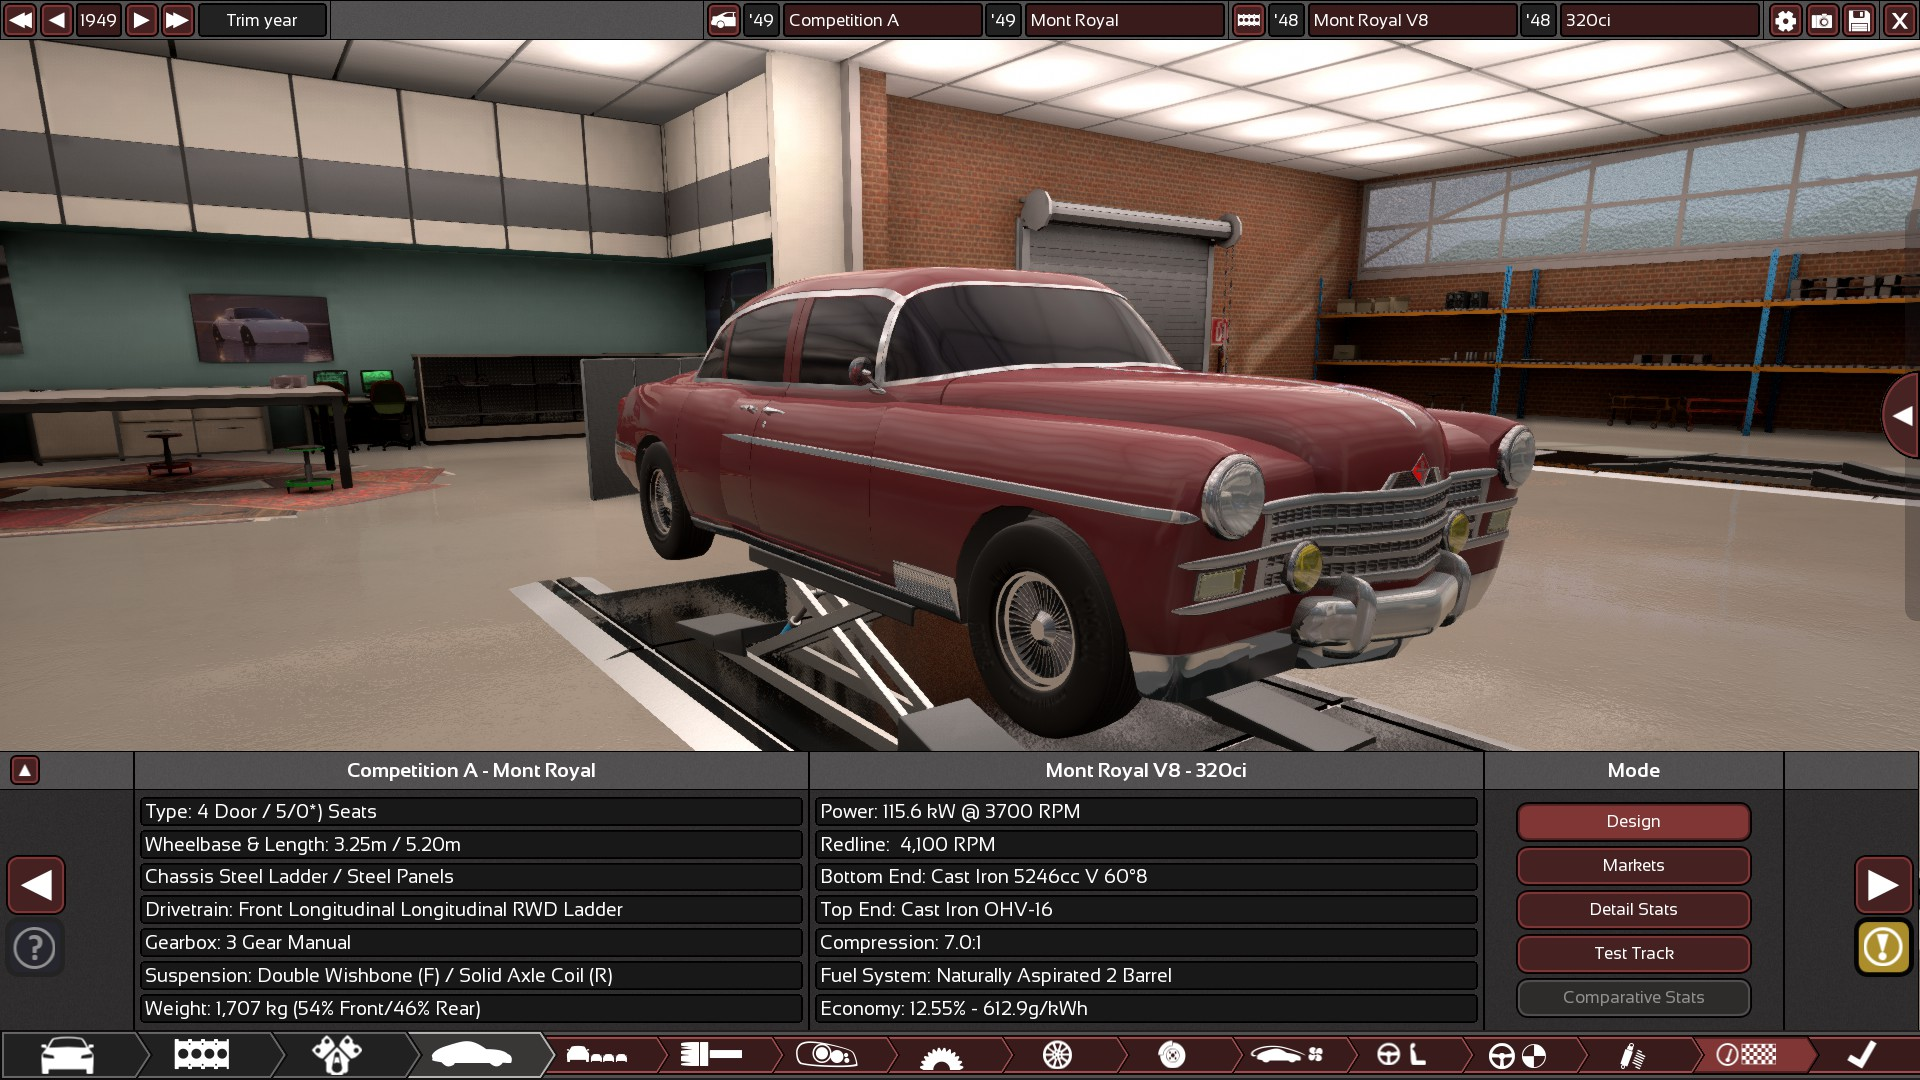 Automation - The Car Company Tycoon Game FREE Steam Key ...